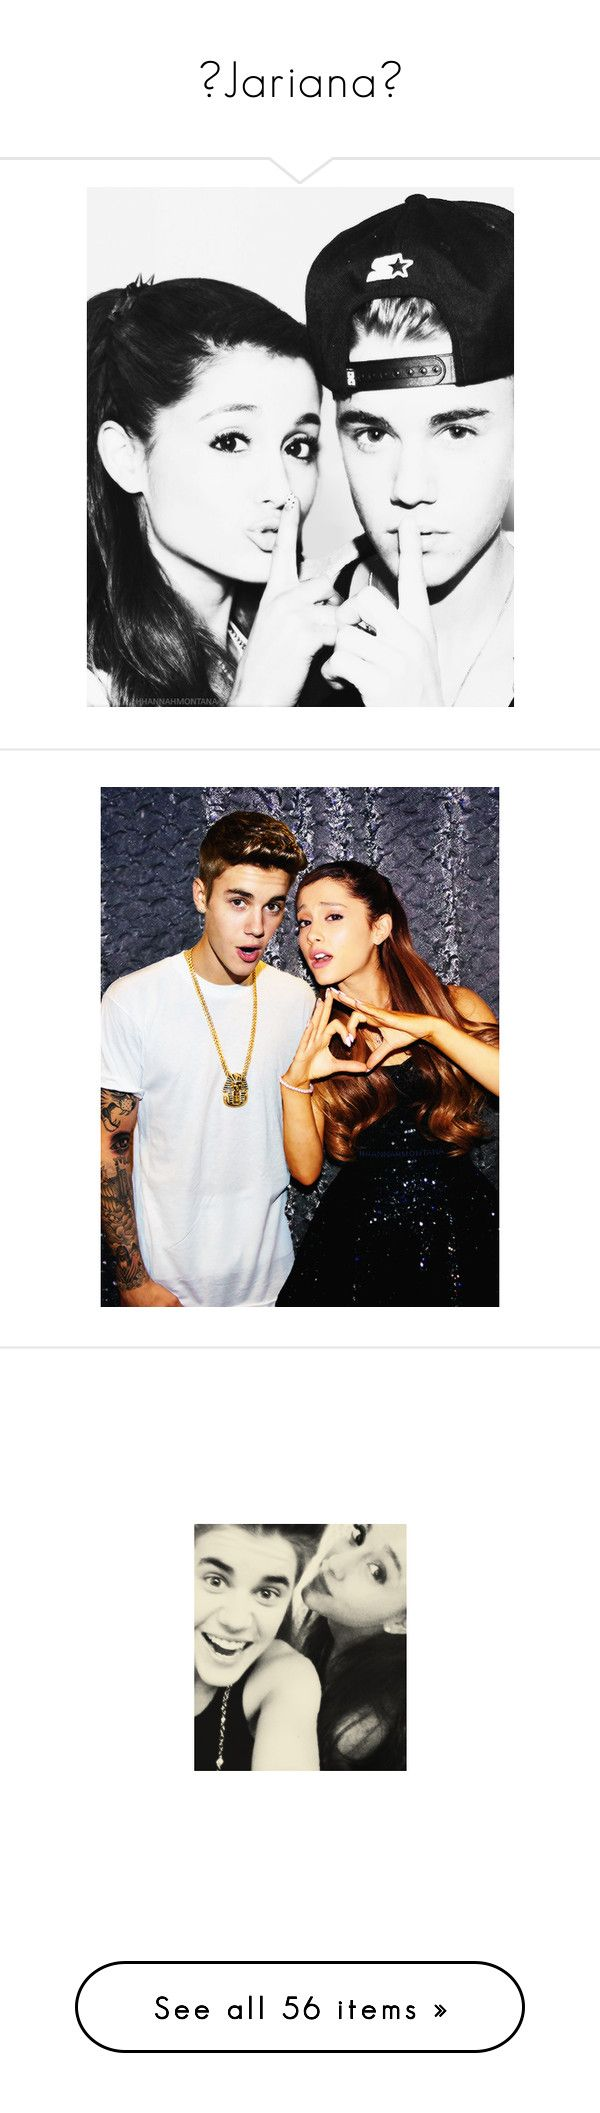 """♥Jariana♥"" by rosydaniela ❤ liked on Polyvore featuring jariana, ariana, ariana grande, ari, justin & ariana, ariana and justin, ariana manips, justin bieber, justin and manips"